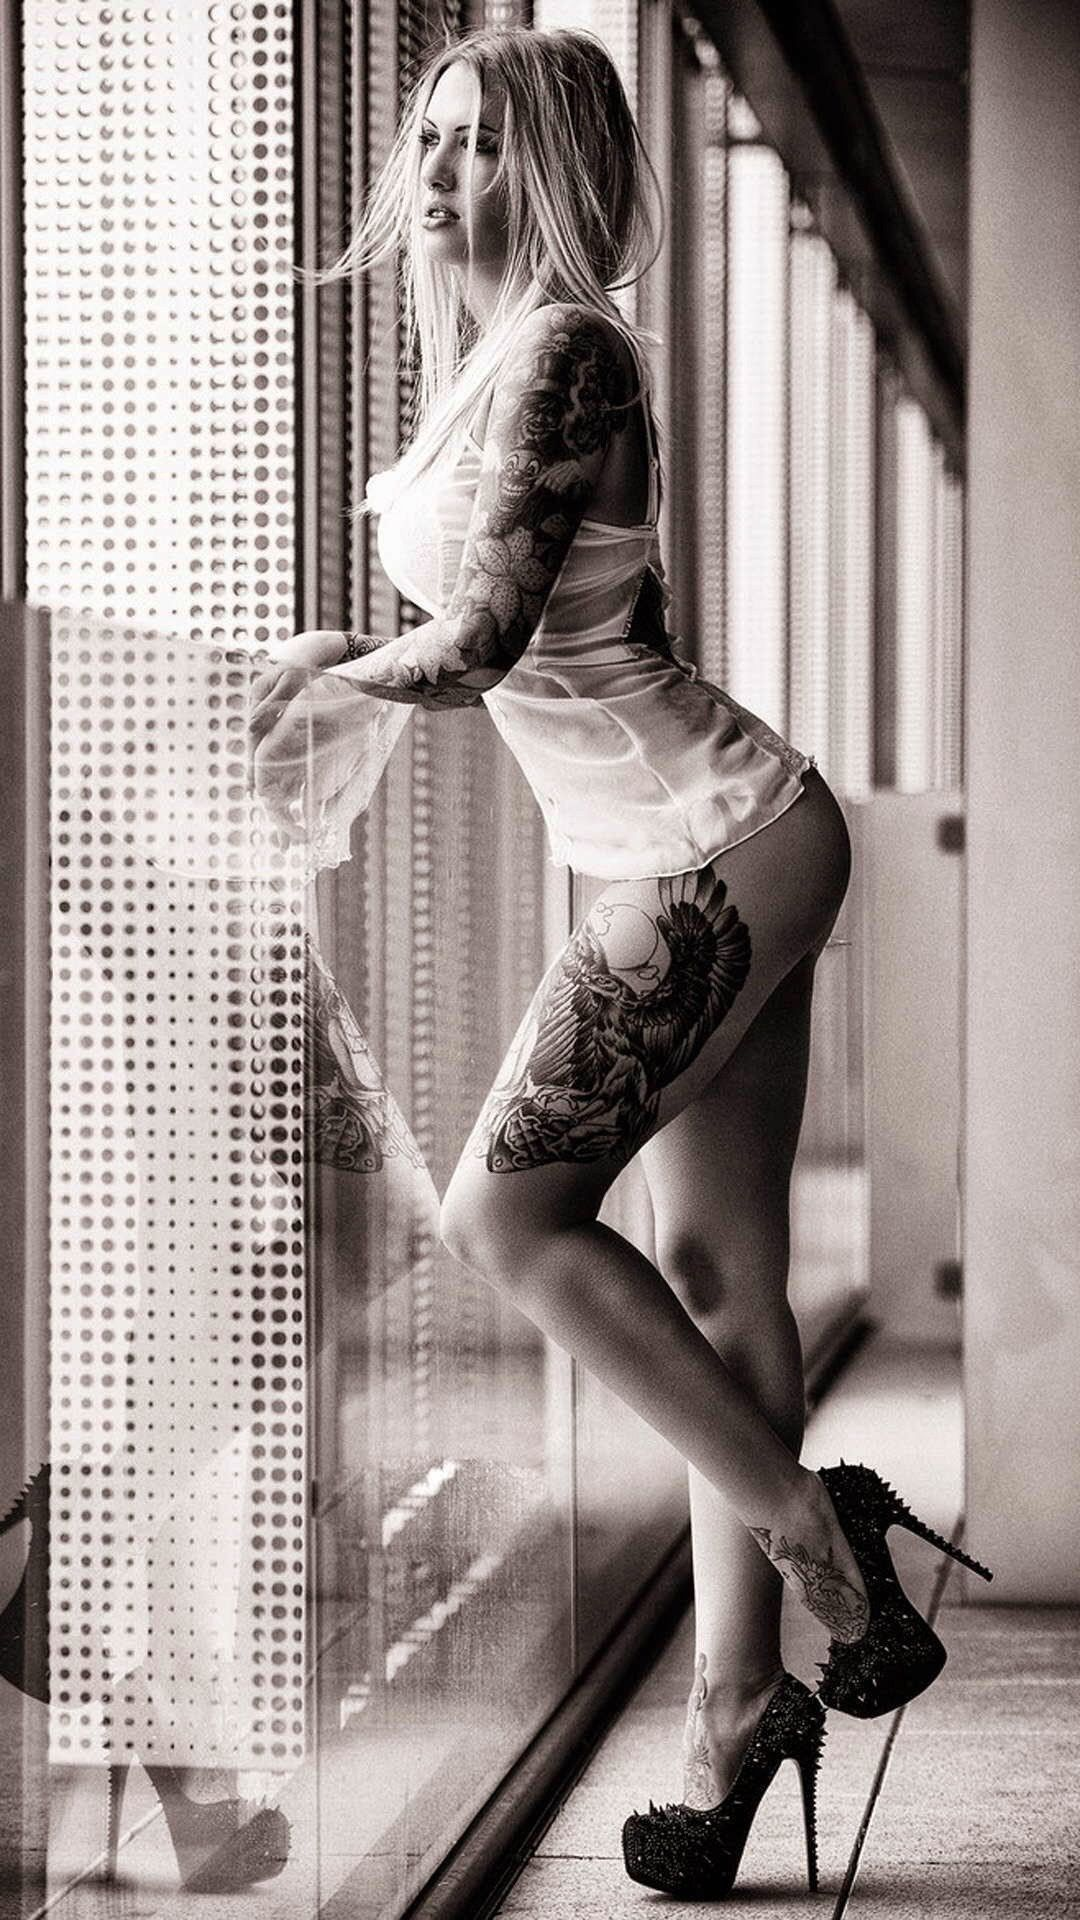 Tattoo Girl Wallpaper Hd Iphone Group , Hd Wallpapers Inked Girls, Pin